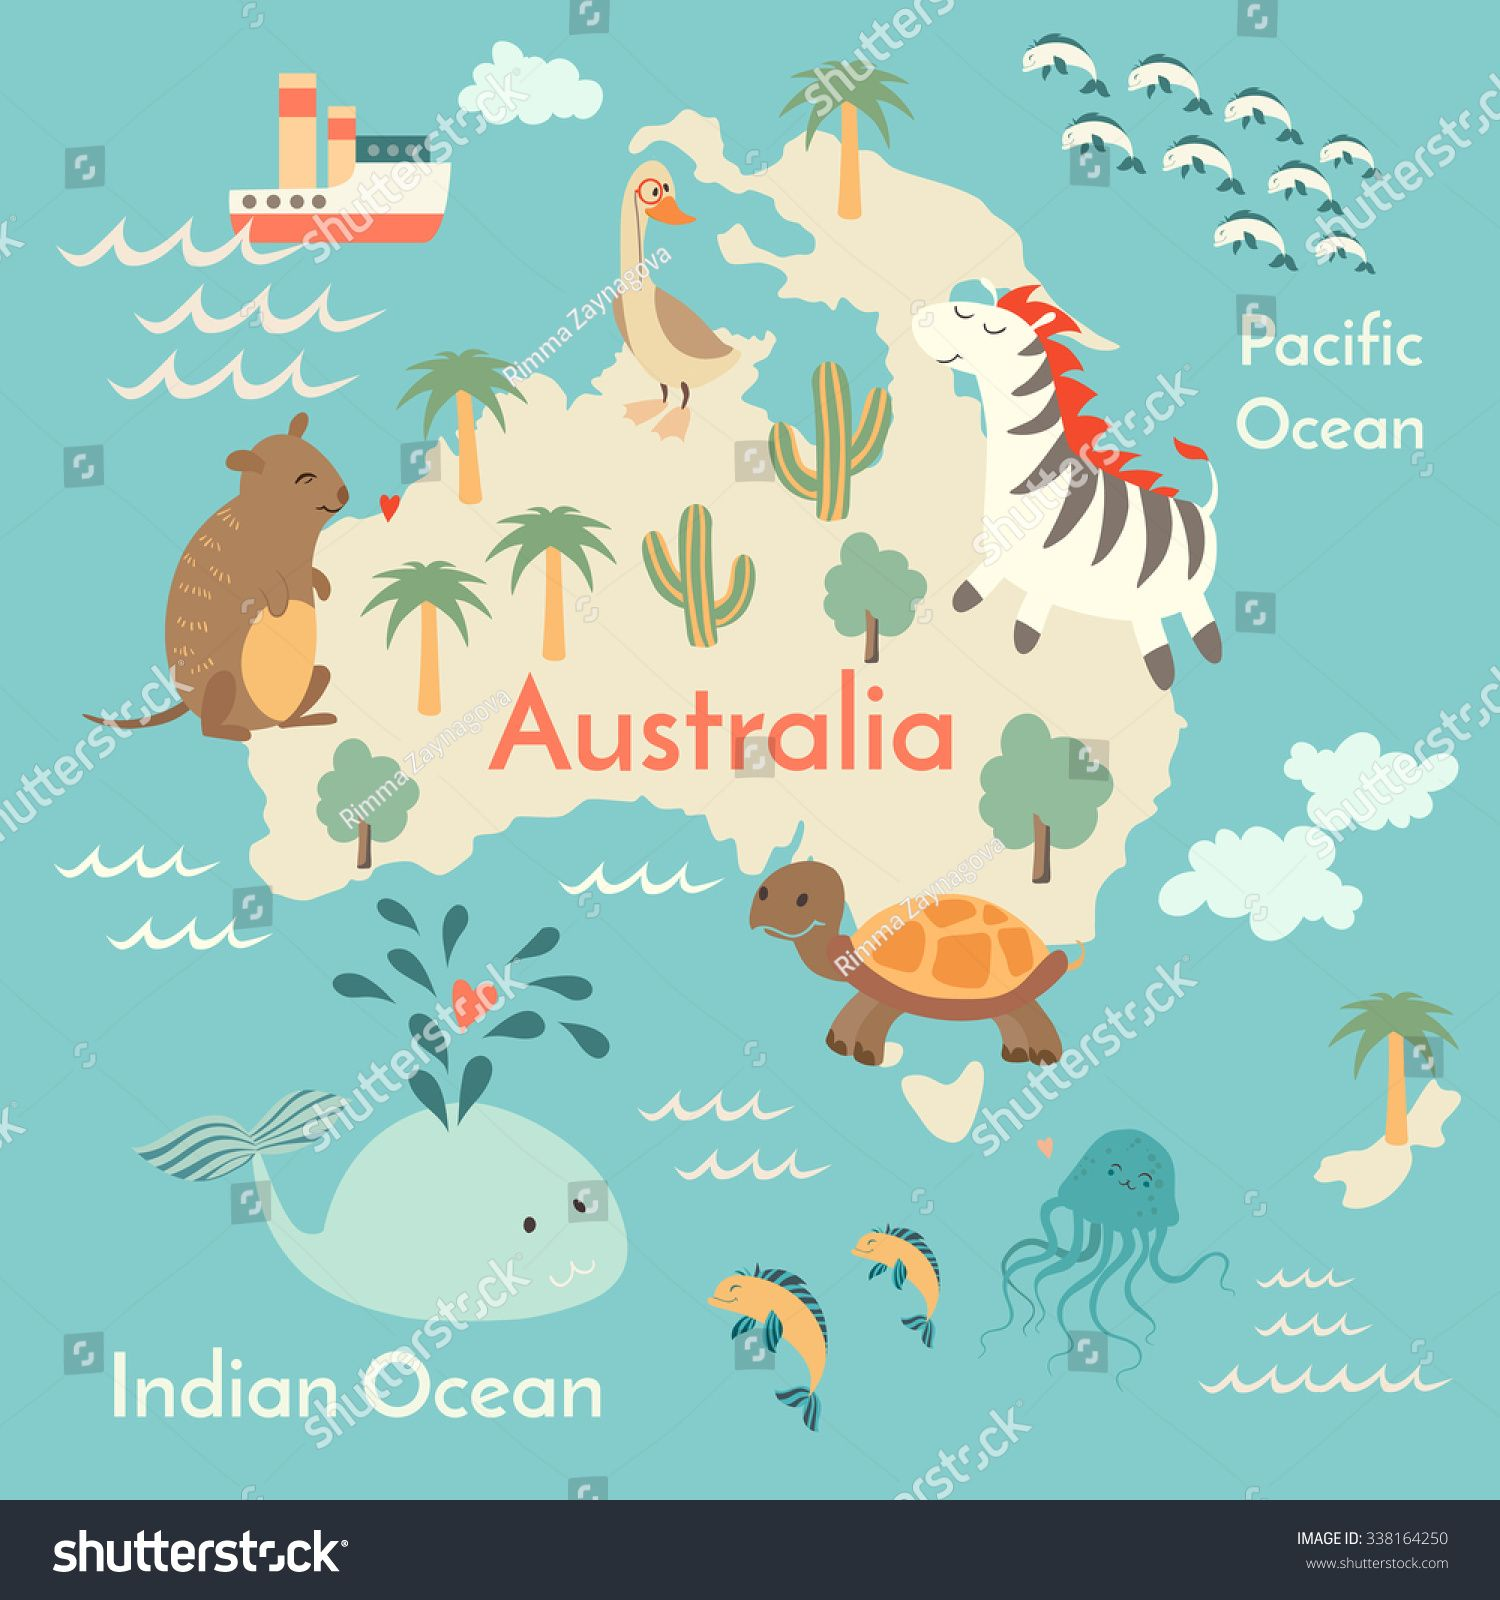 Animals world map australiastralia map for childrenkids animals world map australiastralia map for childrenkids australian animals poster gumiabroncs Gallery